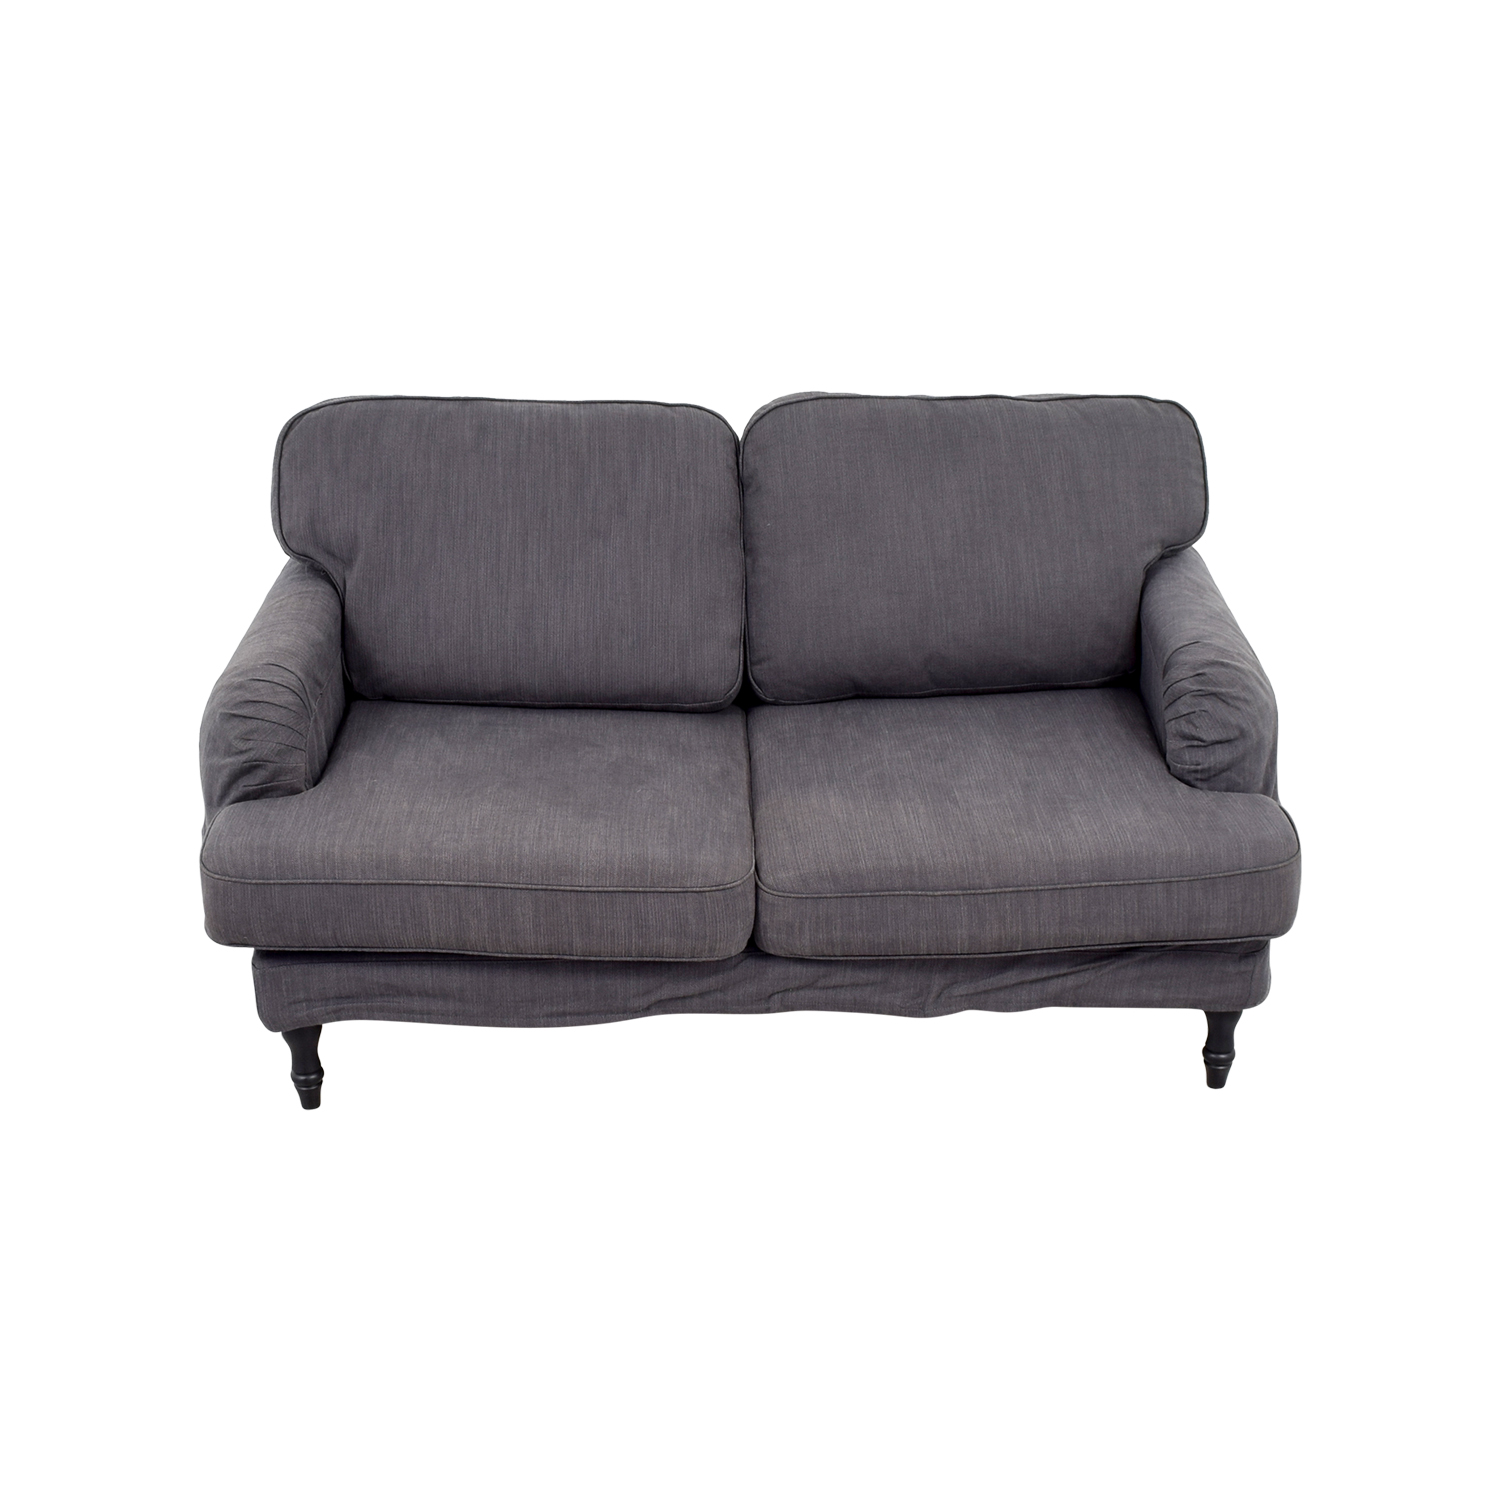 IKEA IKEA Stocksund Grey Loveseat price